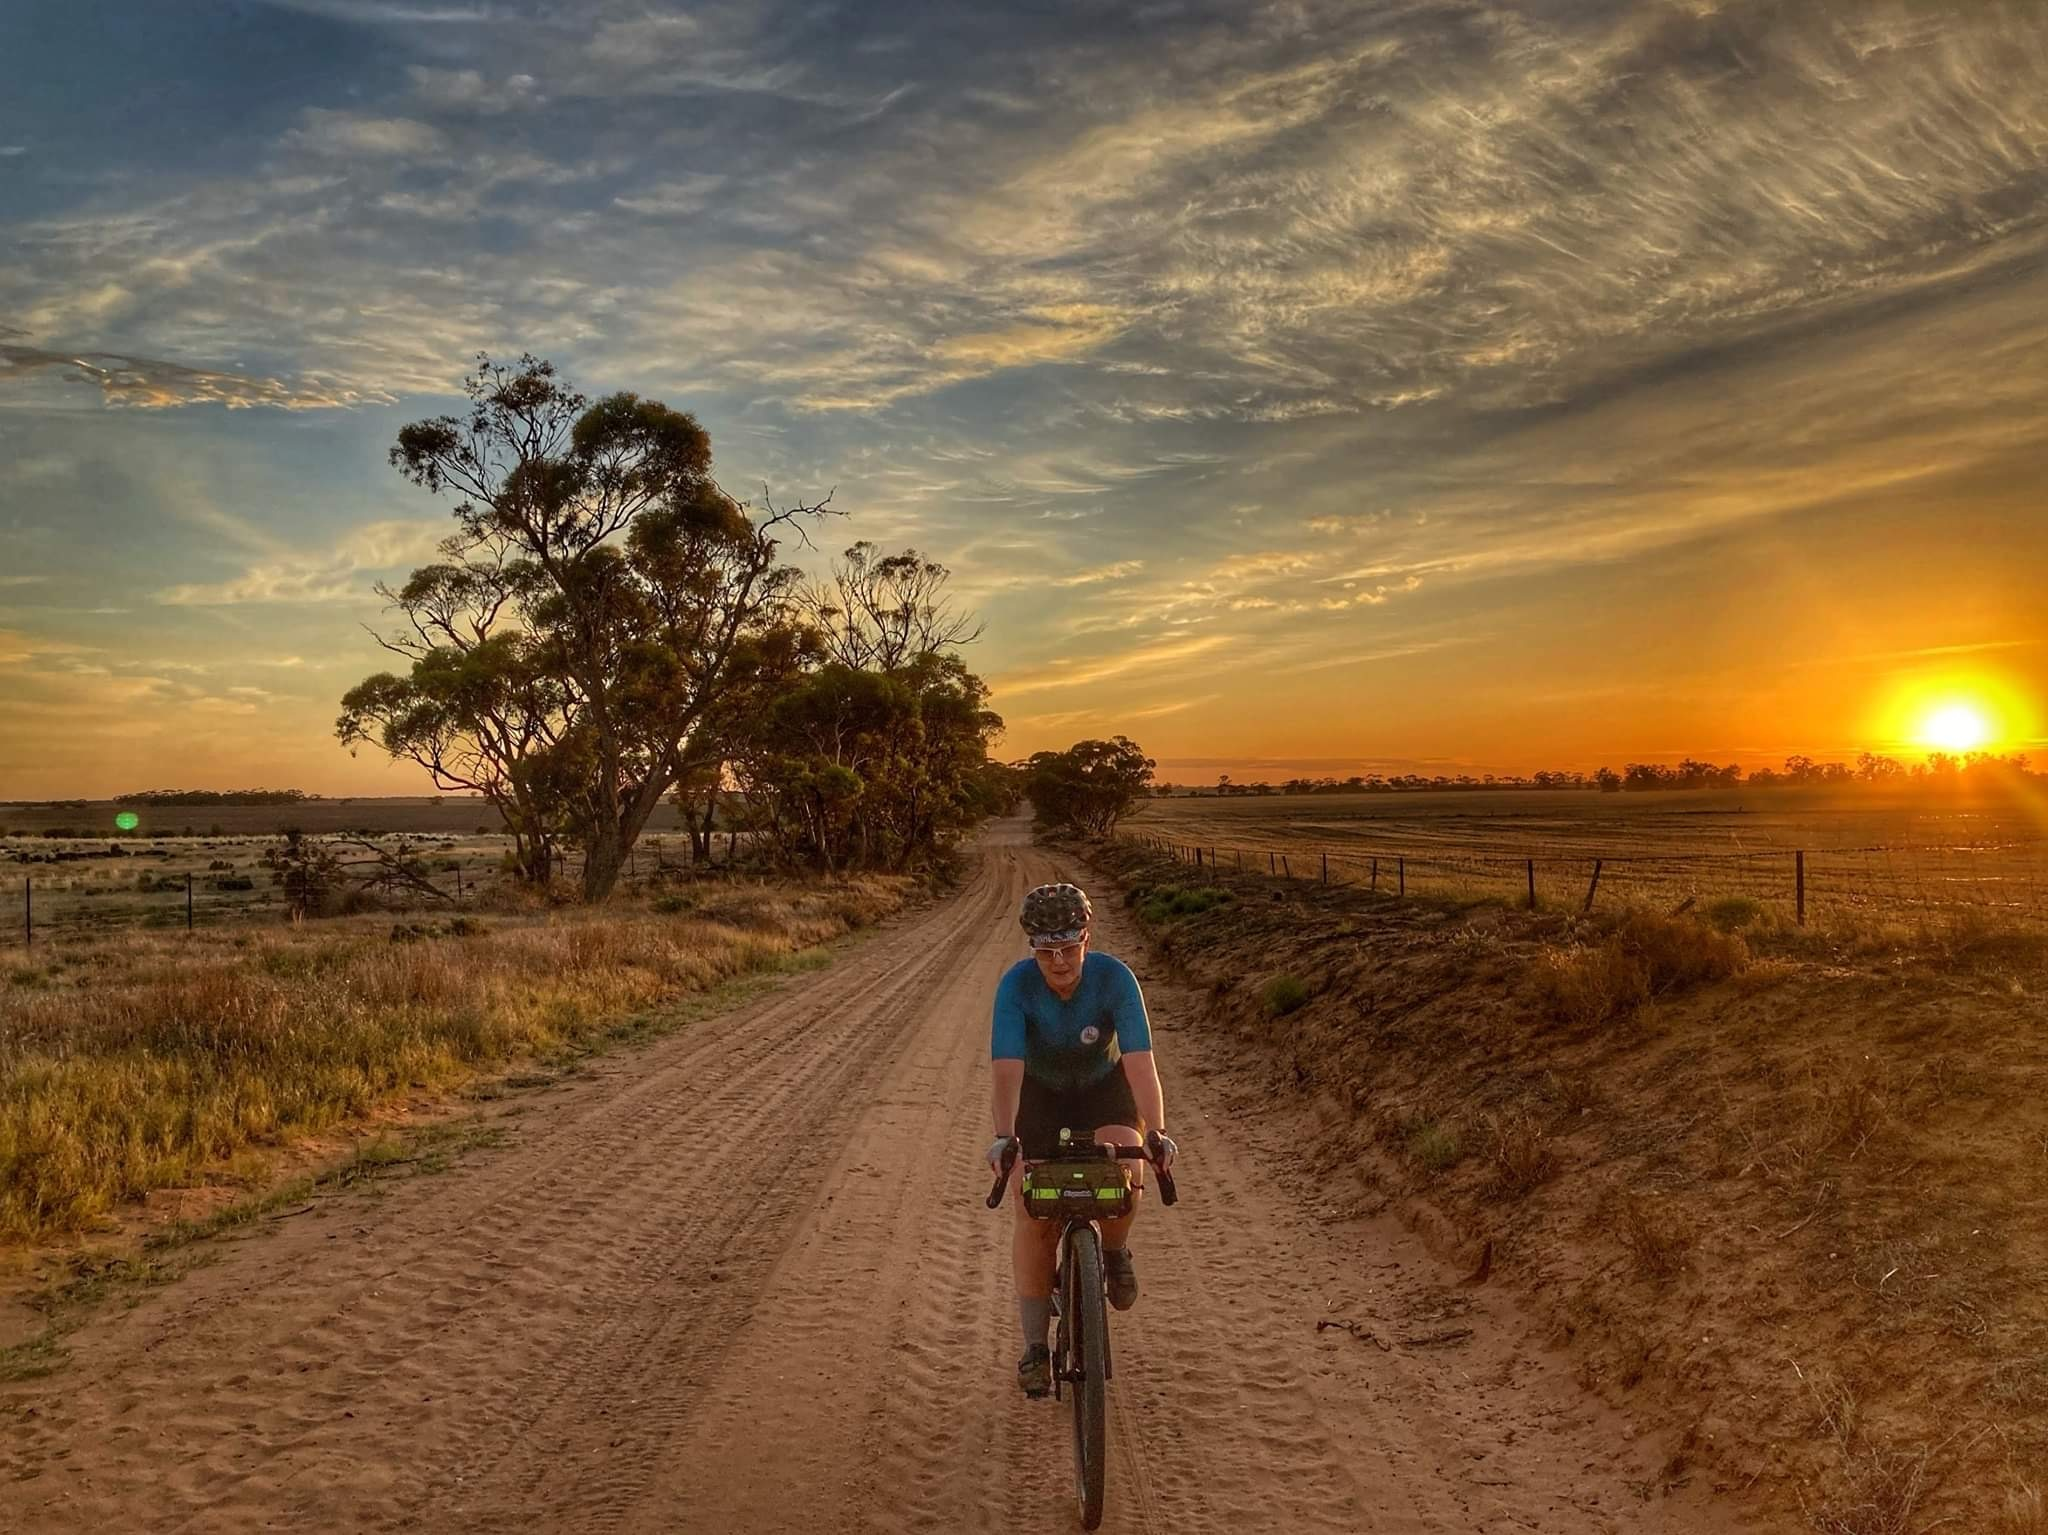 bikepacking at sunset on the Mallee Blast 1000 route